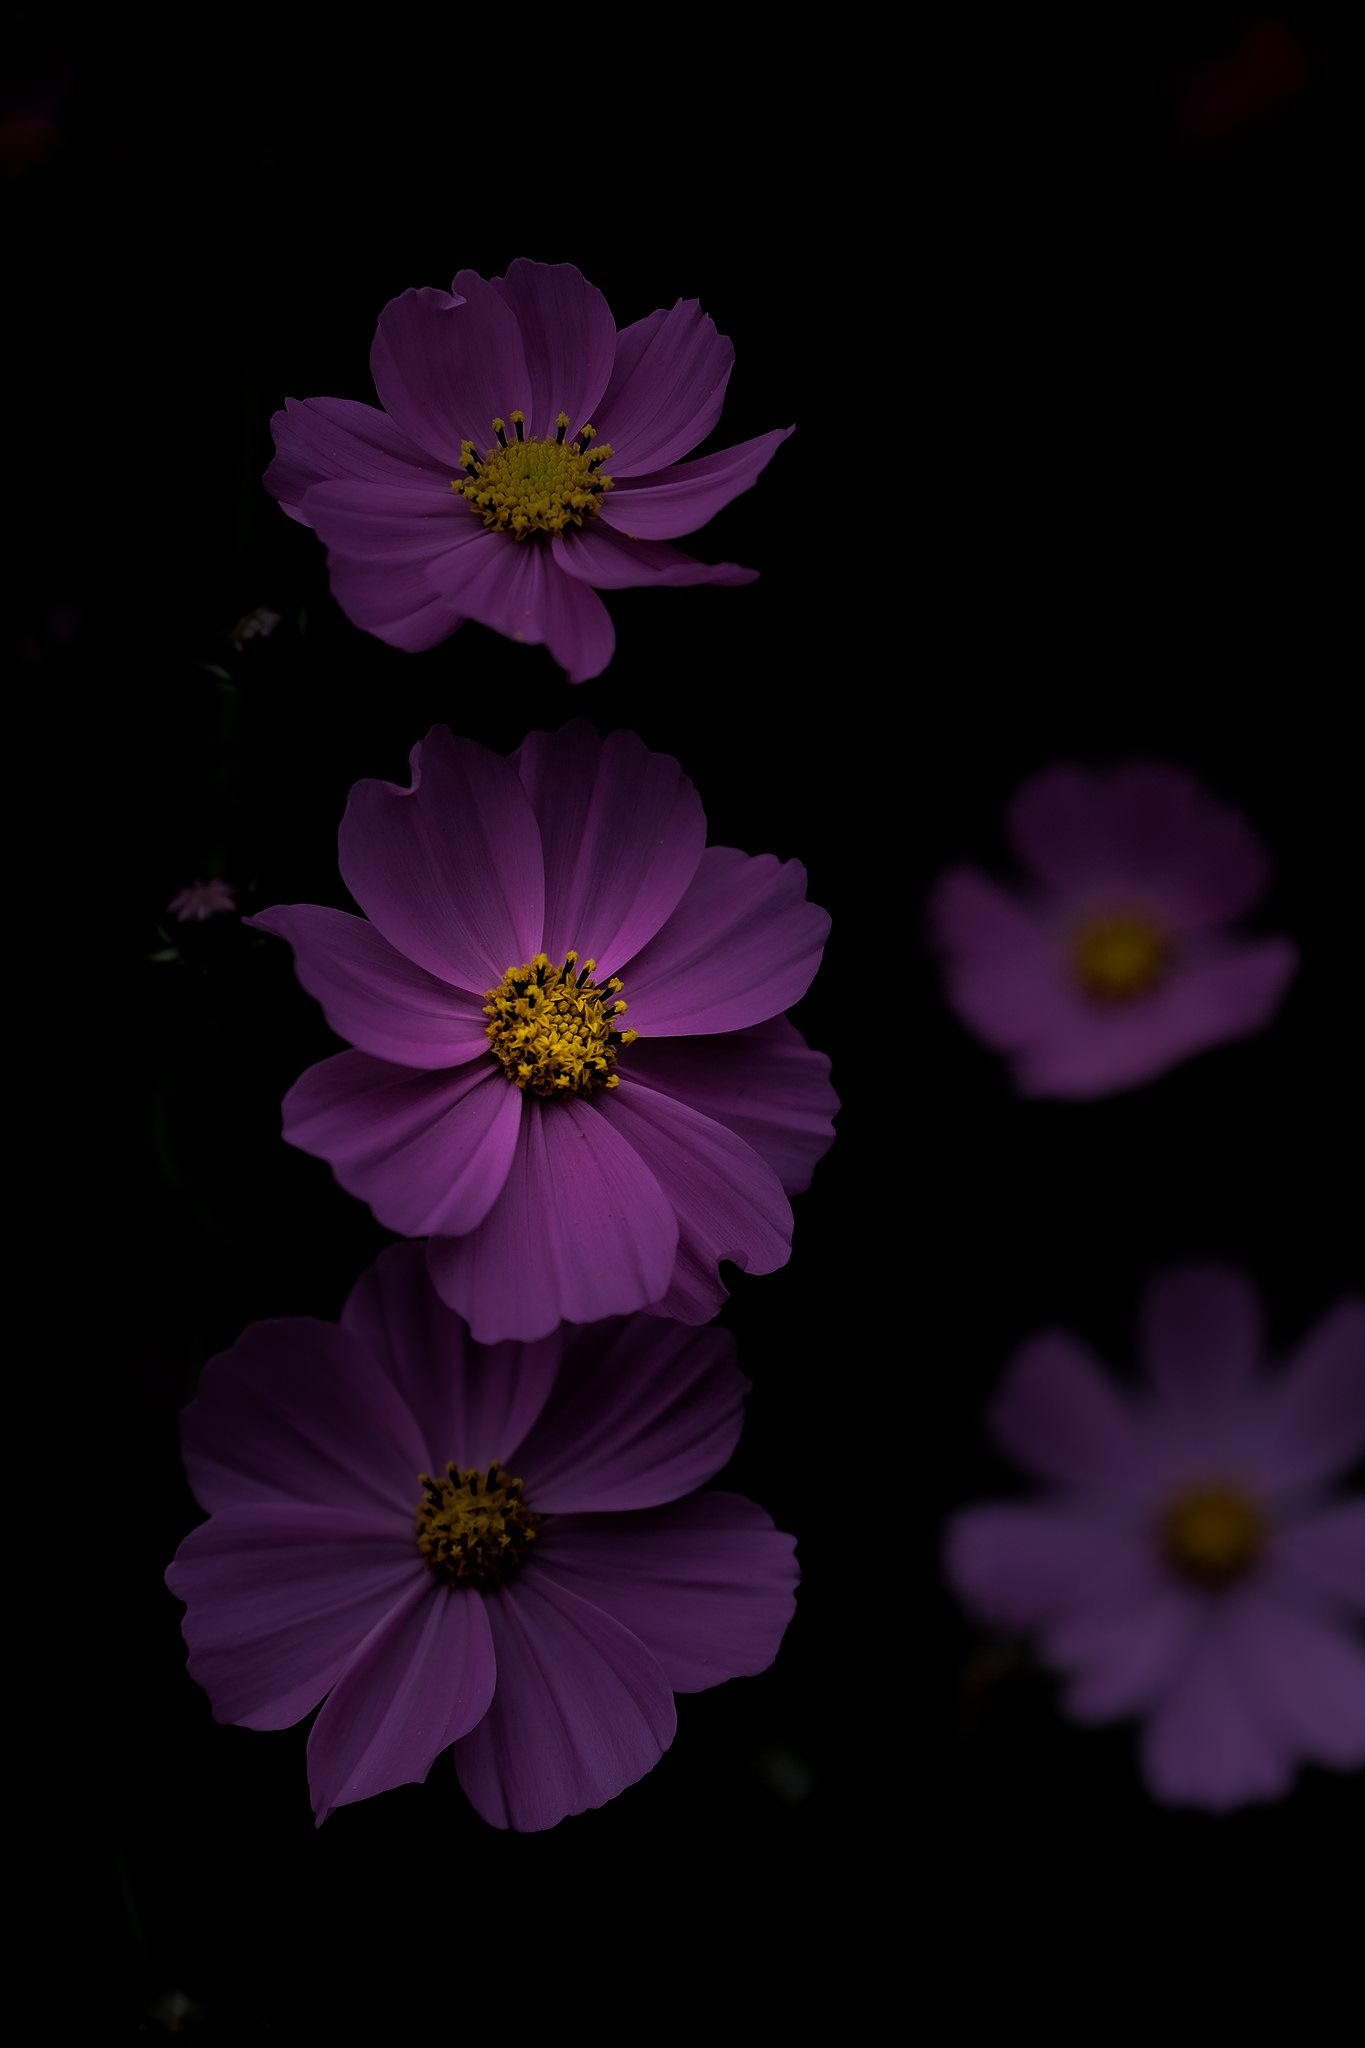 Untitled Flowers Photography Wallpaper Purple Flowers Wallpaper Wallpaper Nature Flowers